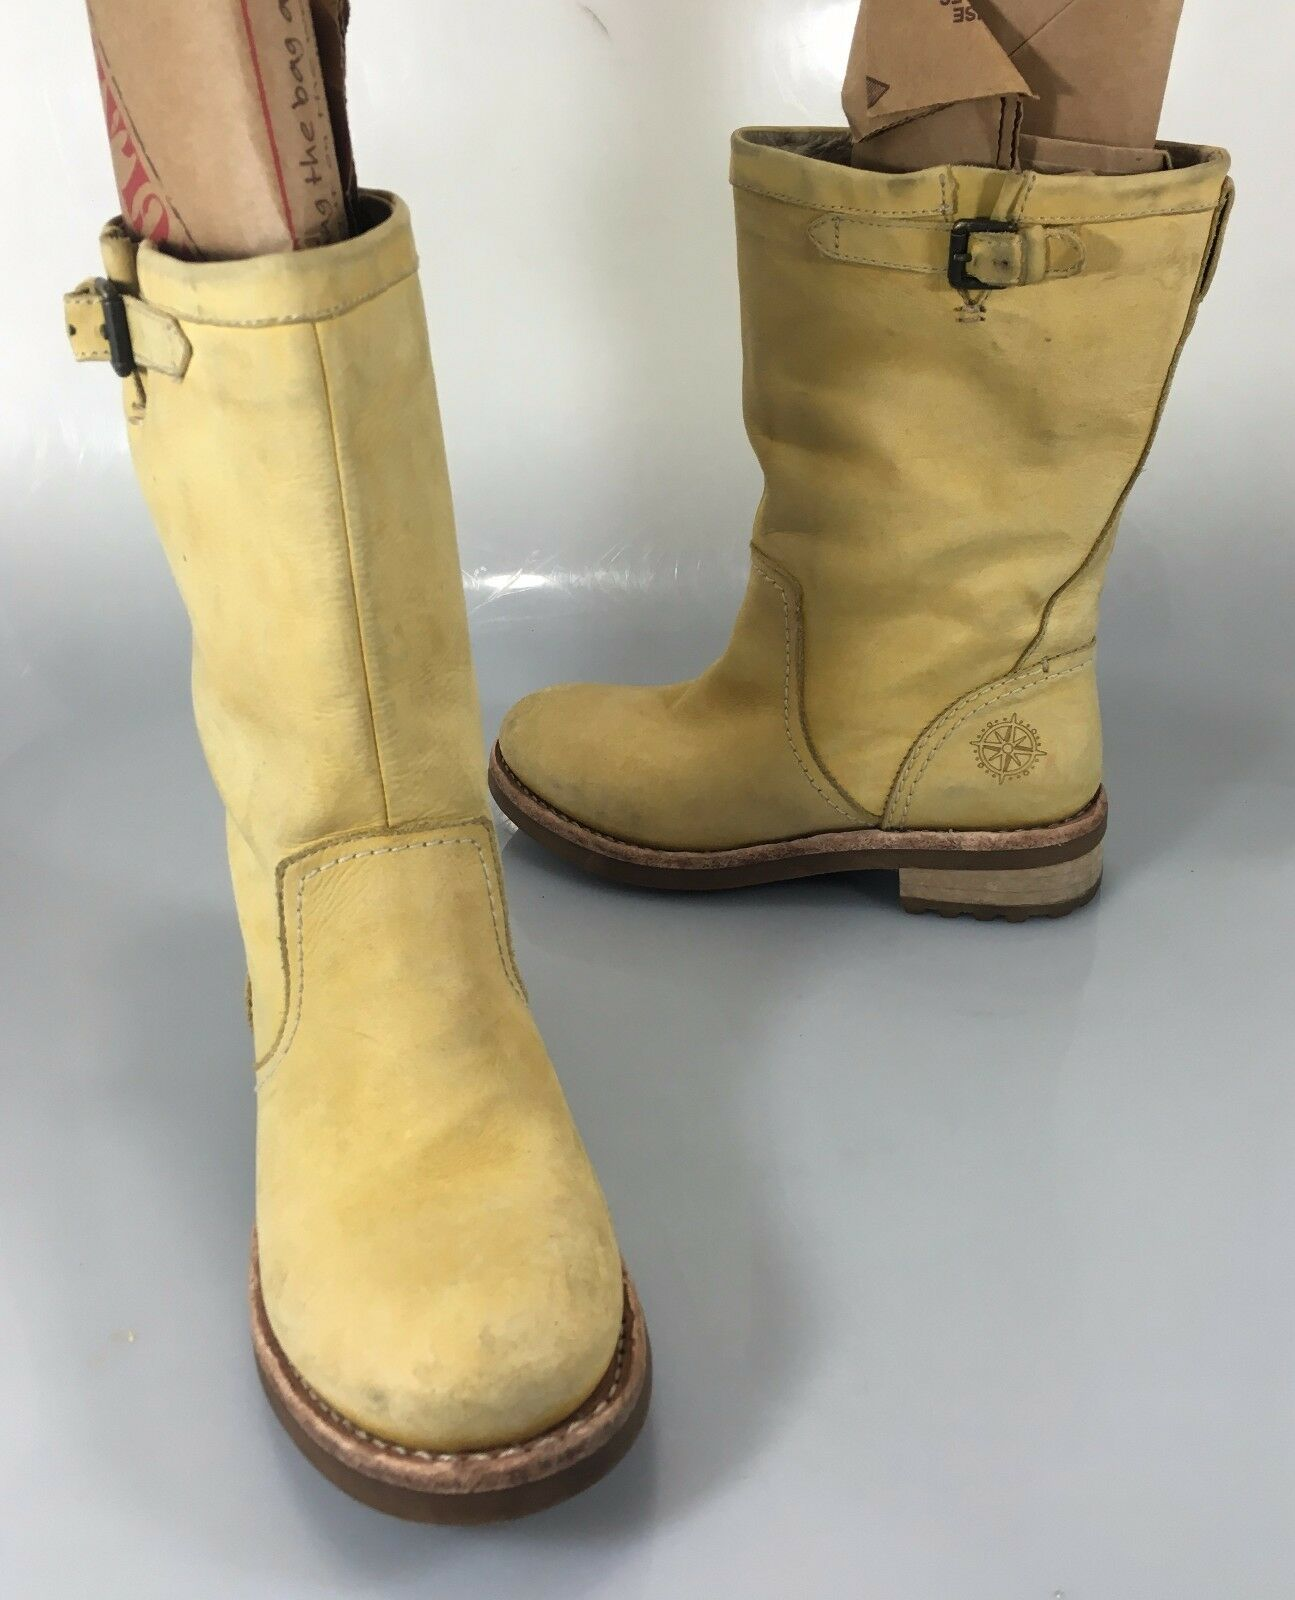 Bussola N Belfast Womens 36 US Yellow Suede Mid-Calf Riding Boots